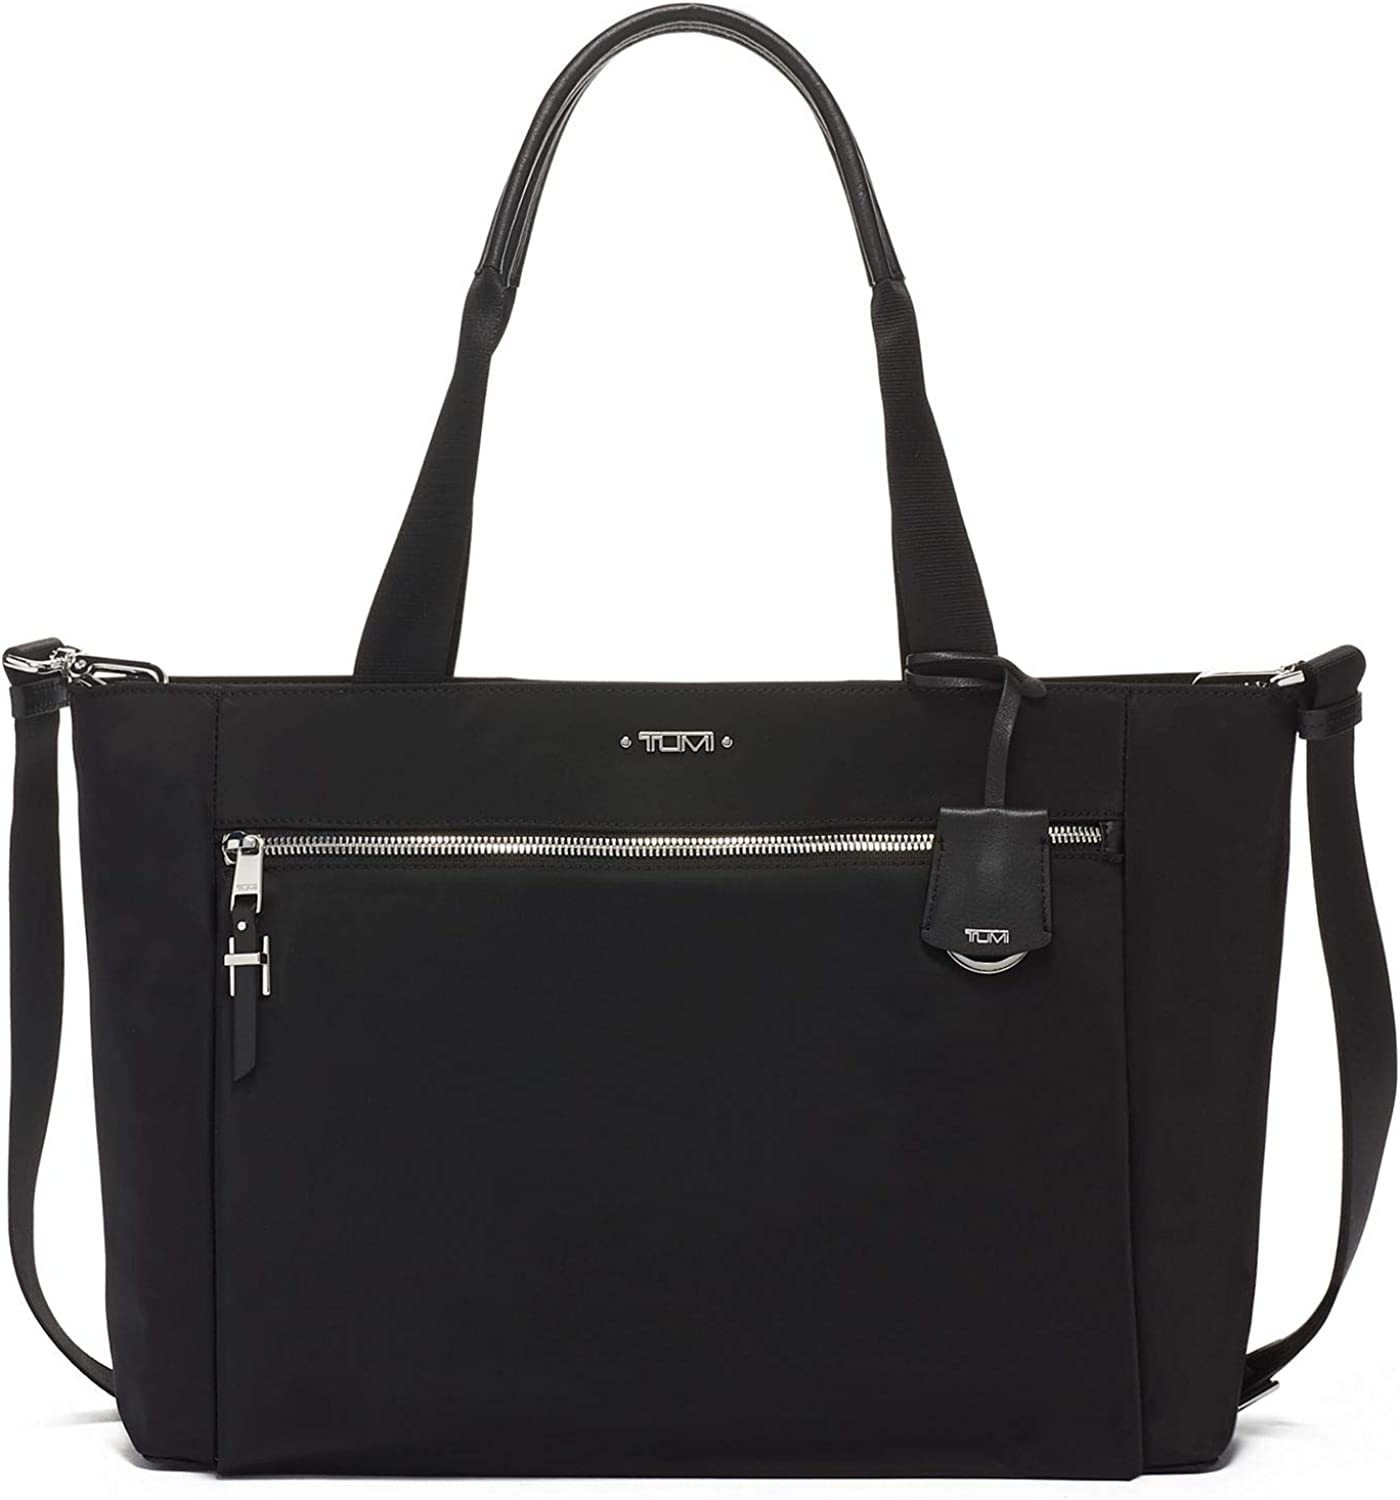 TUMI - Voyageur Mauren Laptop Tote - 13 Inch Computer Bag for Women